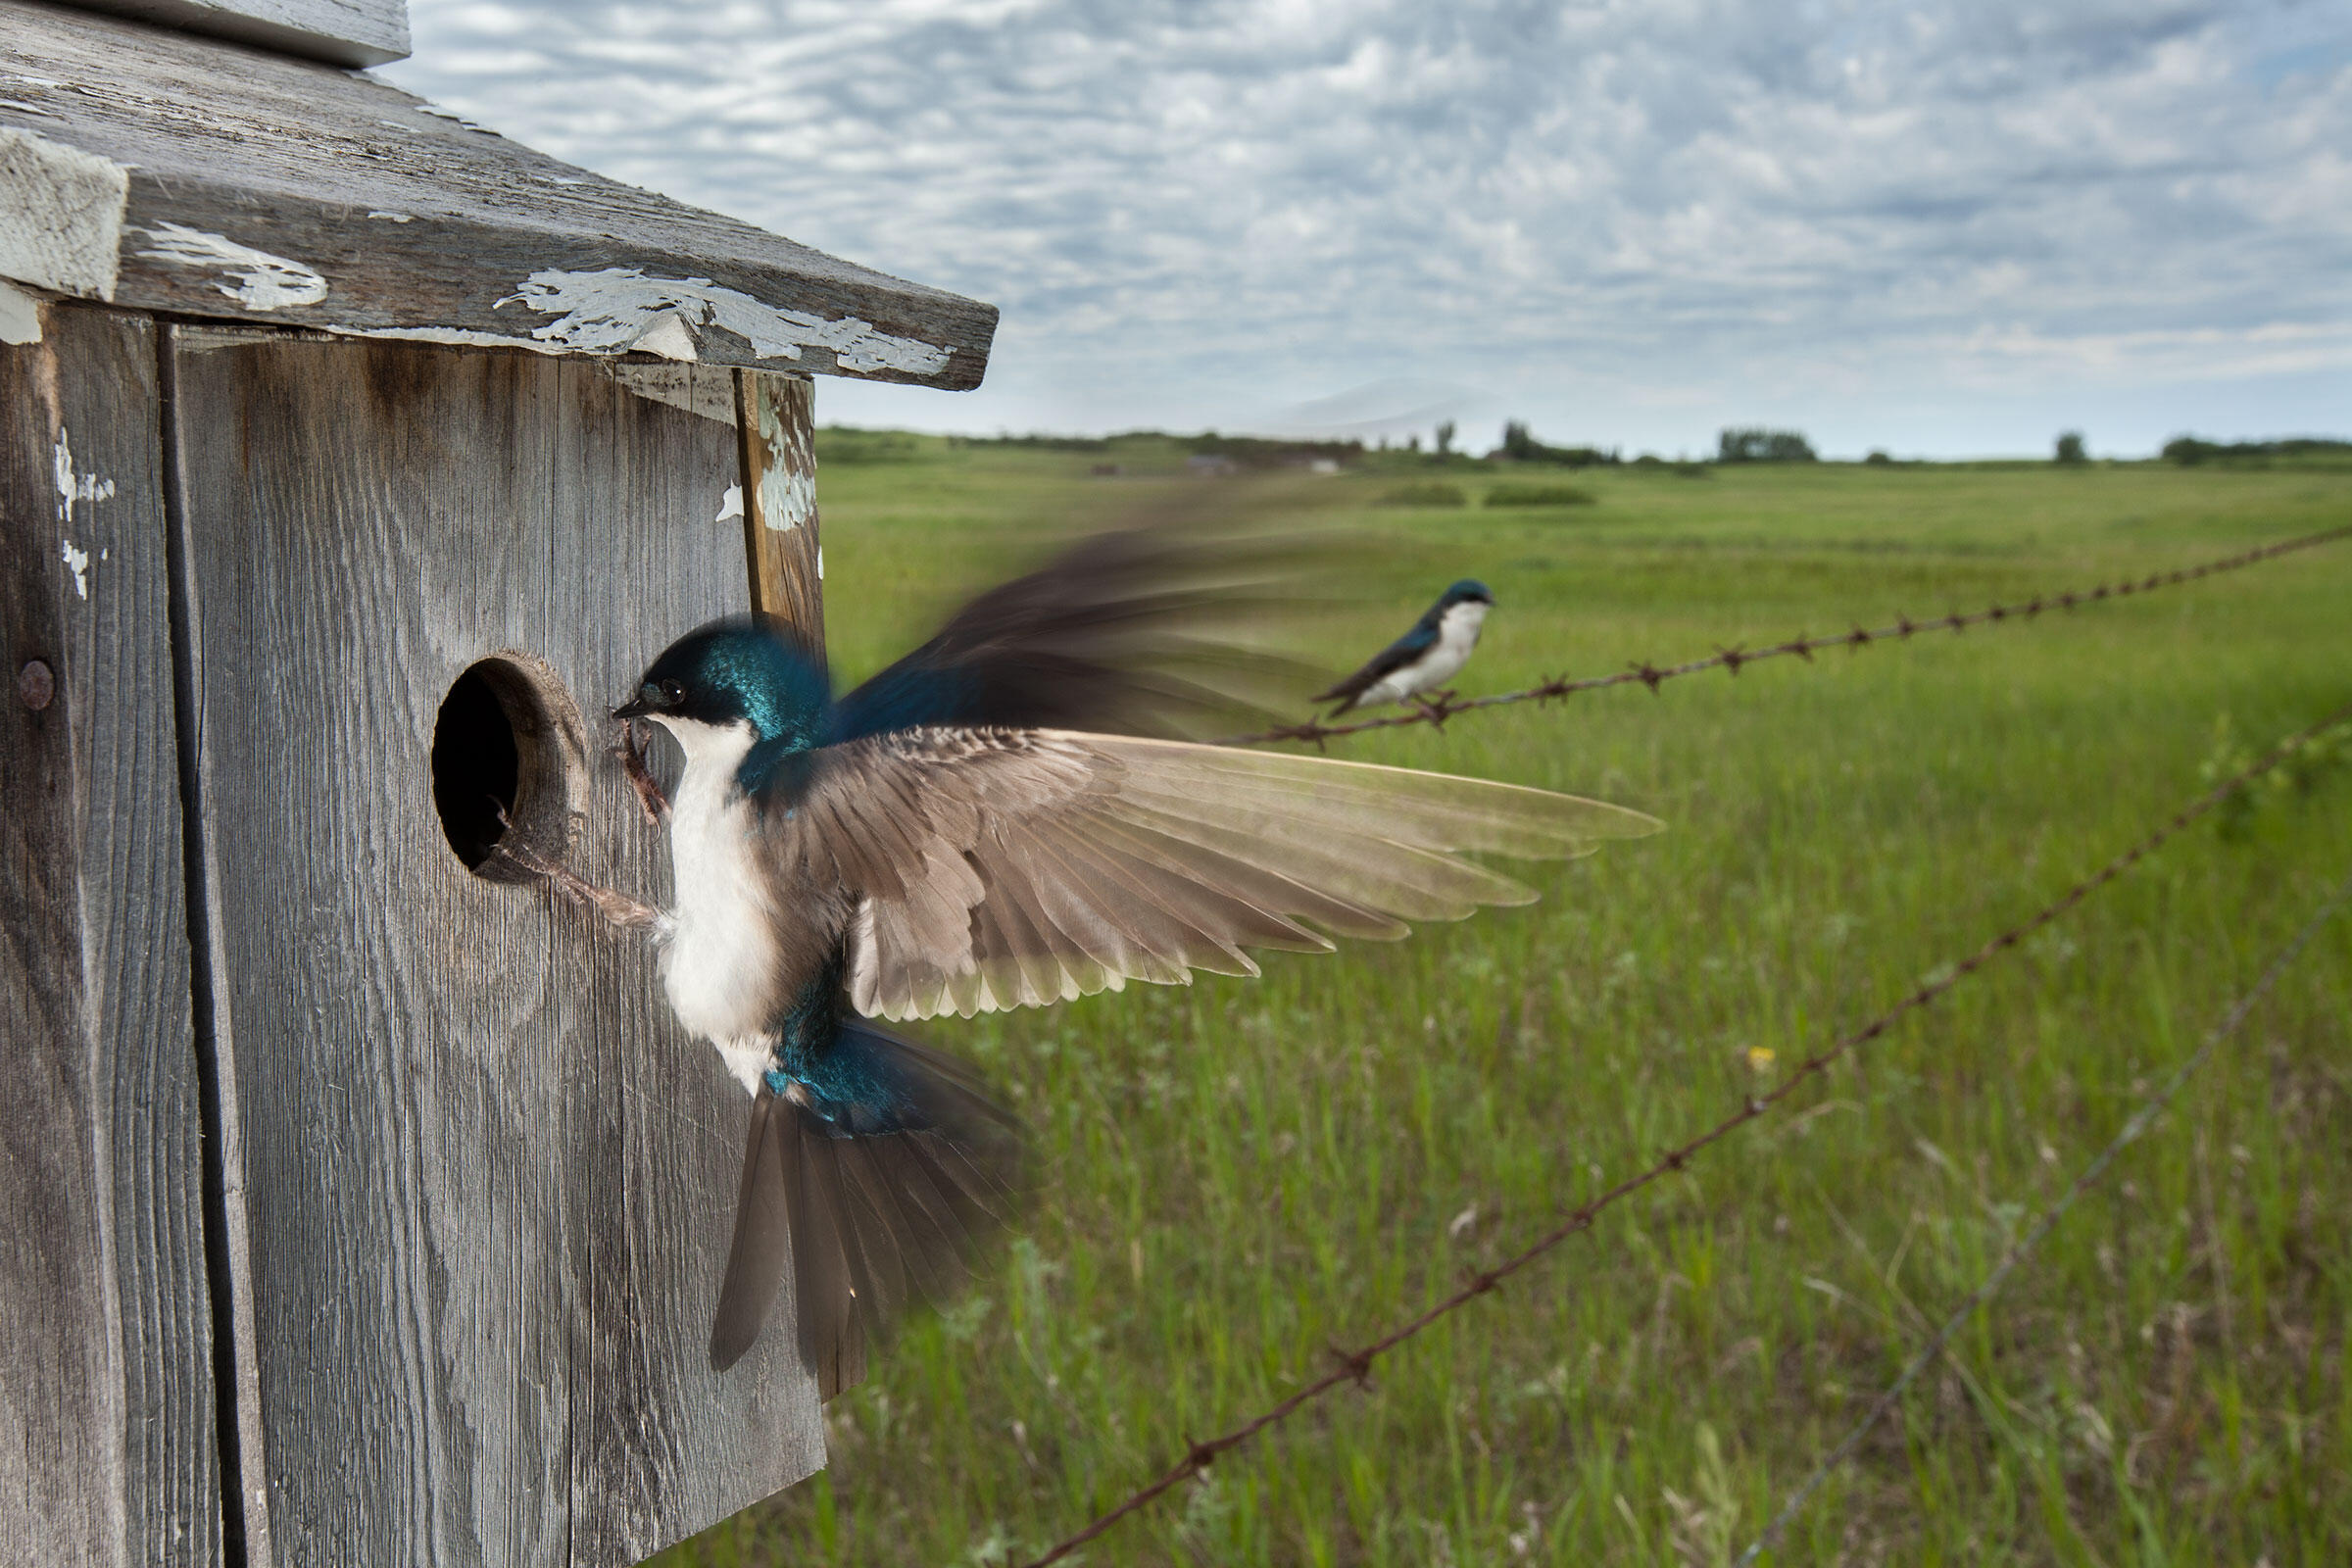 A Tree Swallow enters one of the nest boxes monitored by Morrissey's team, while its mate perches on a nearby barbed-wire fence. Connor Stefanison